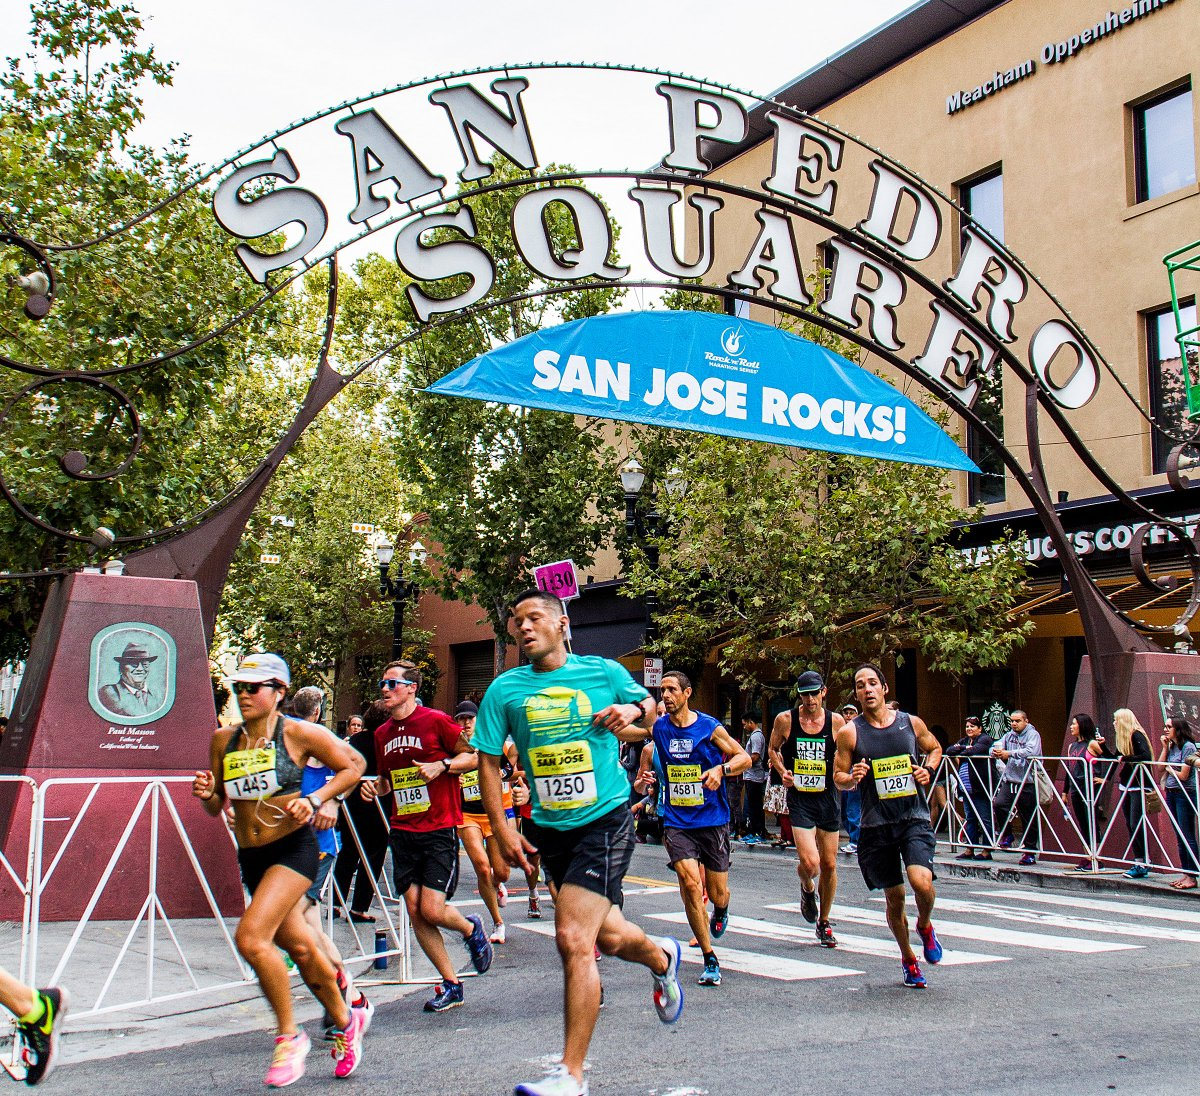 RT @RunRocknRoll: Enter to win an @AlaskaAir flyaway for you and a guest to